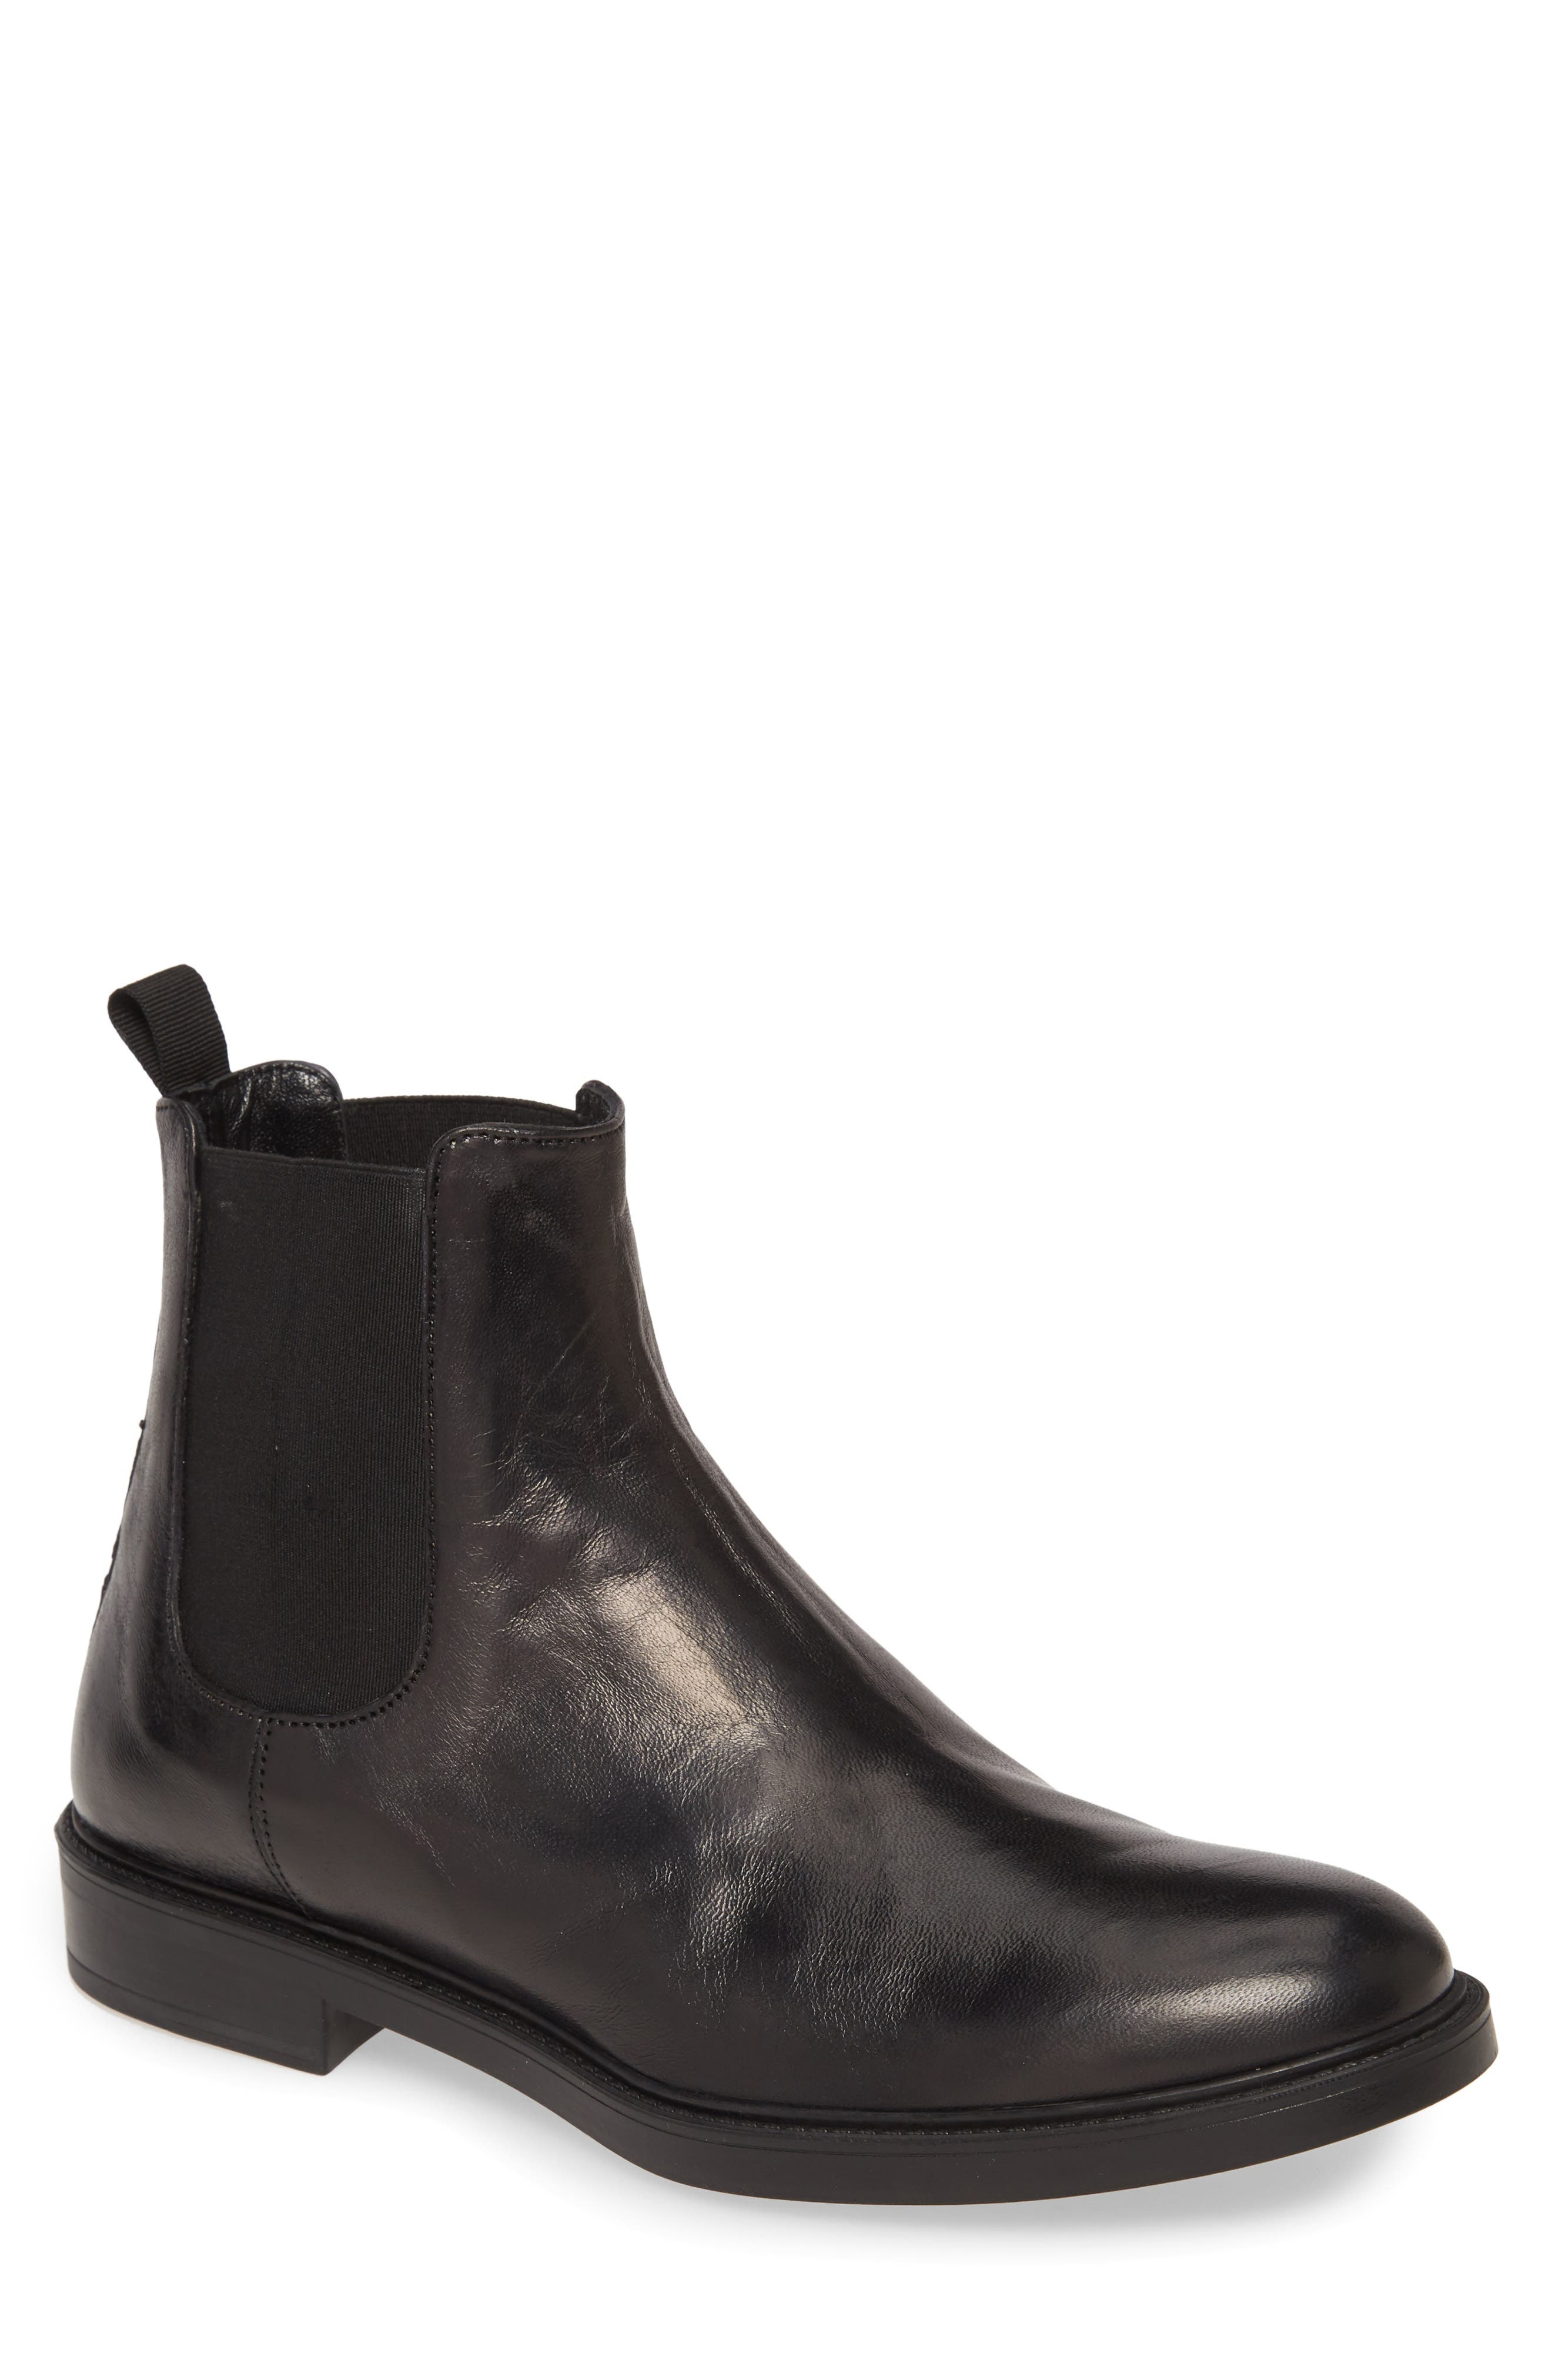 best british brands for chelsea boots